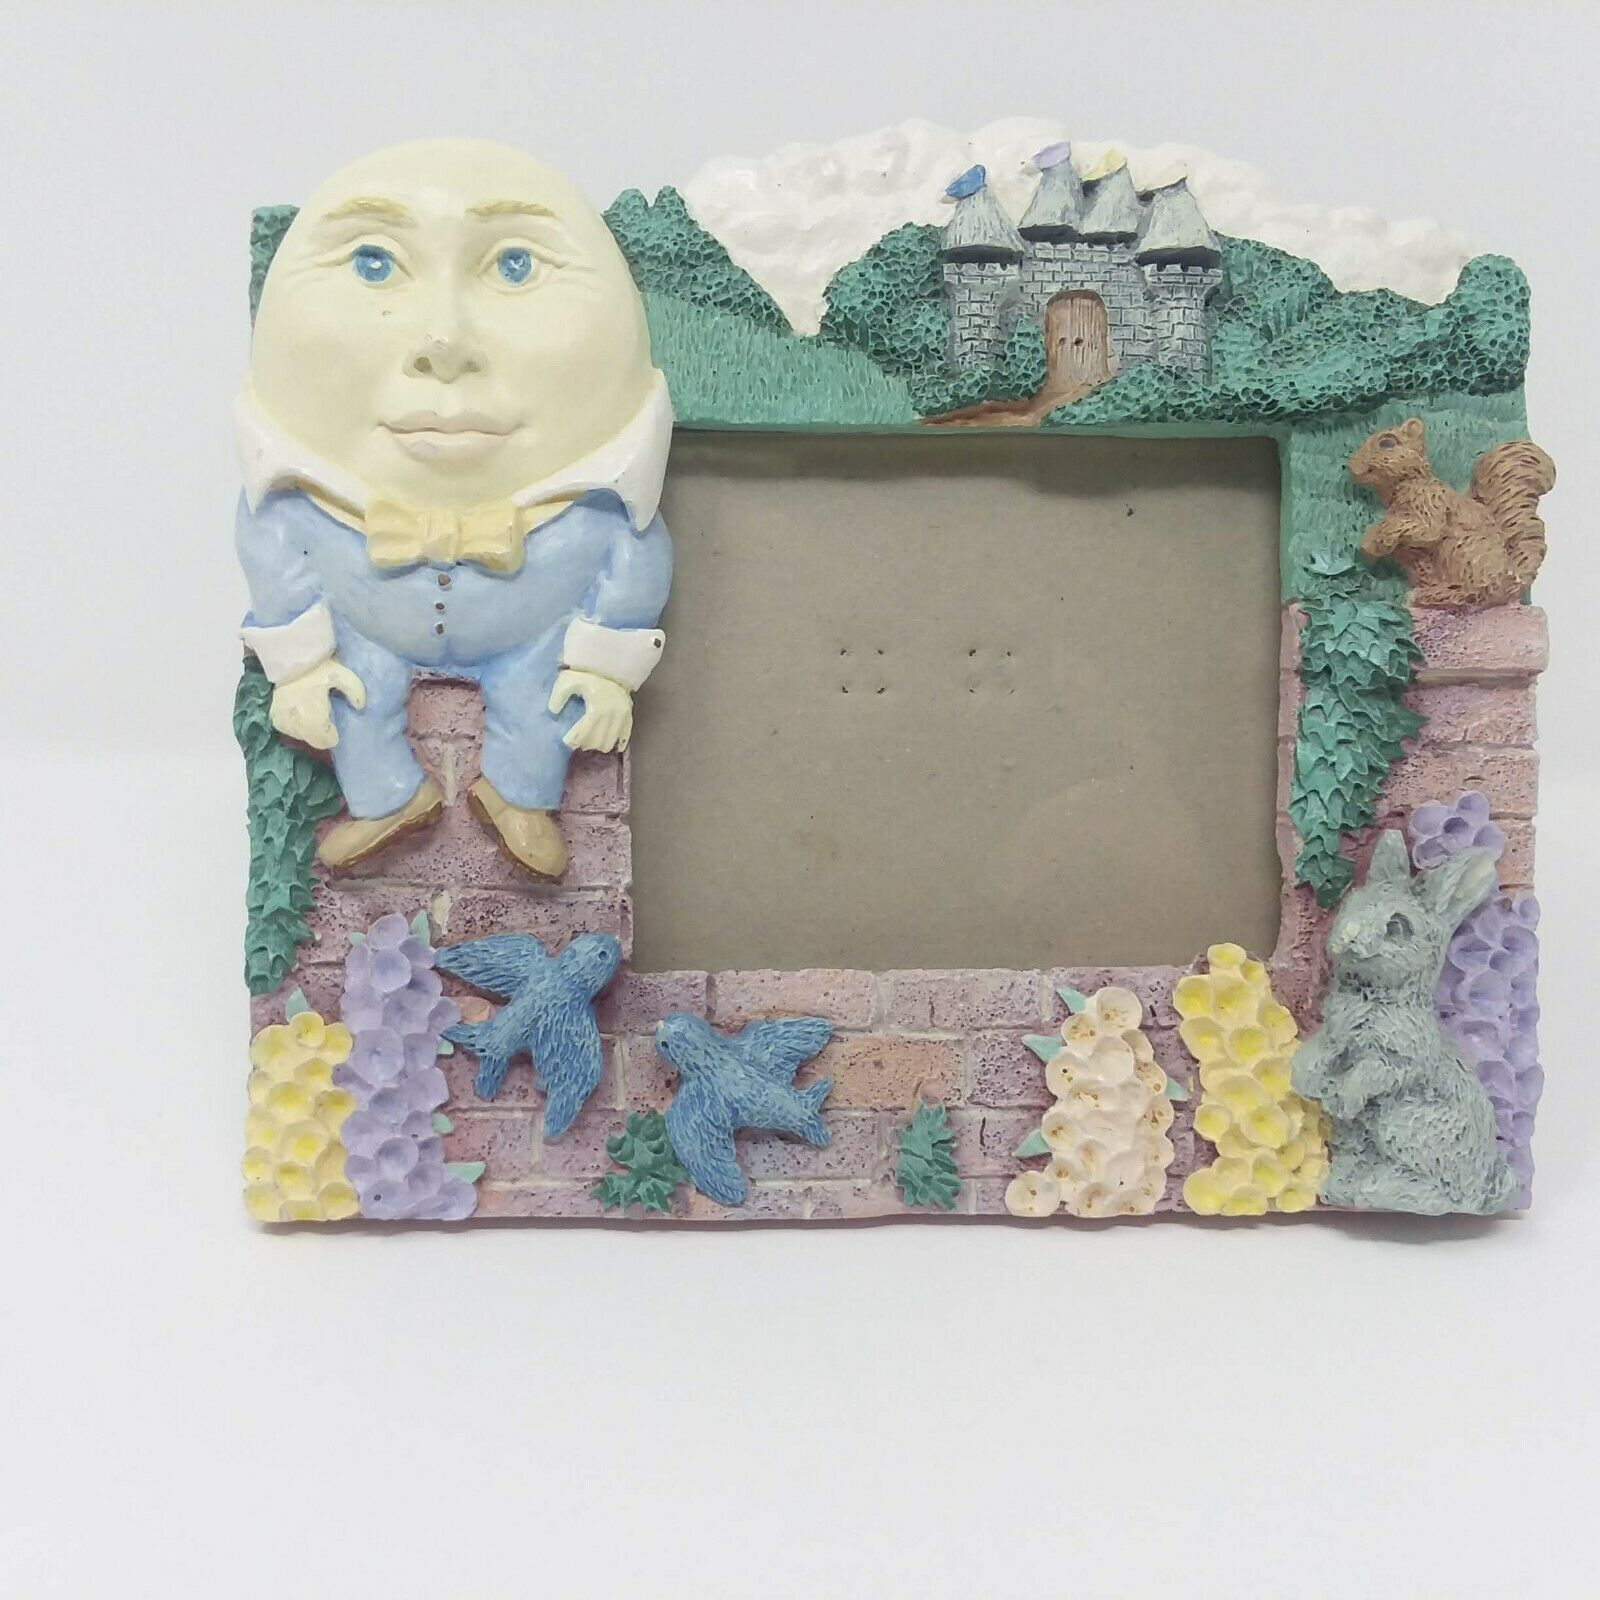 Primary image for Humpty Dumpty Vintage 3.5 x 5 Photo Frame Nursery Rhyme Decor EUC Picture